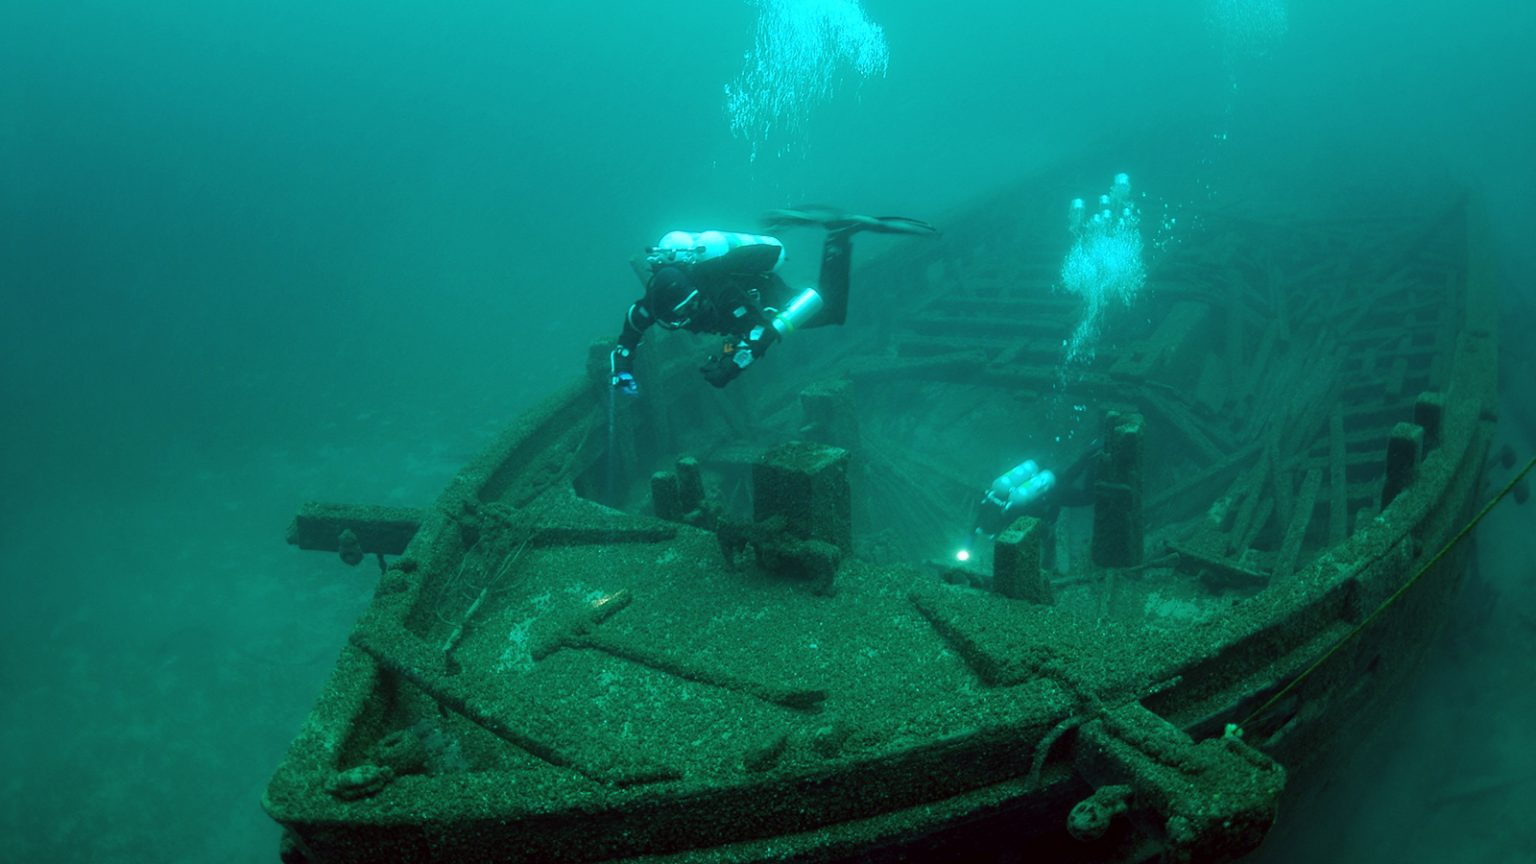 Underwater photo of divers looking down at a shipwreck